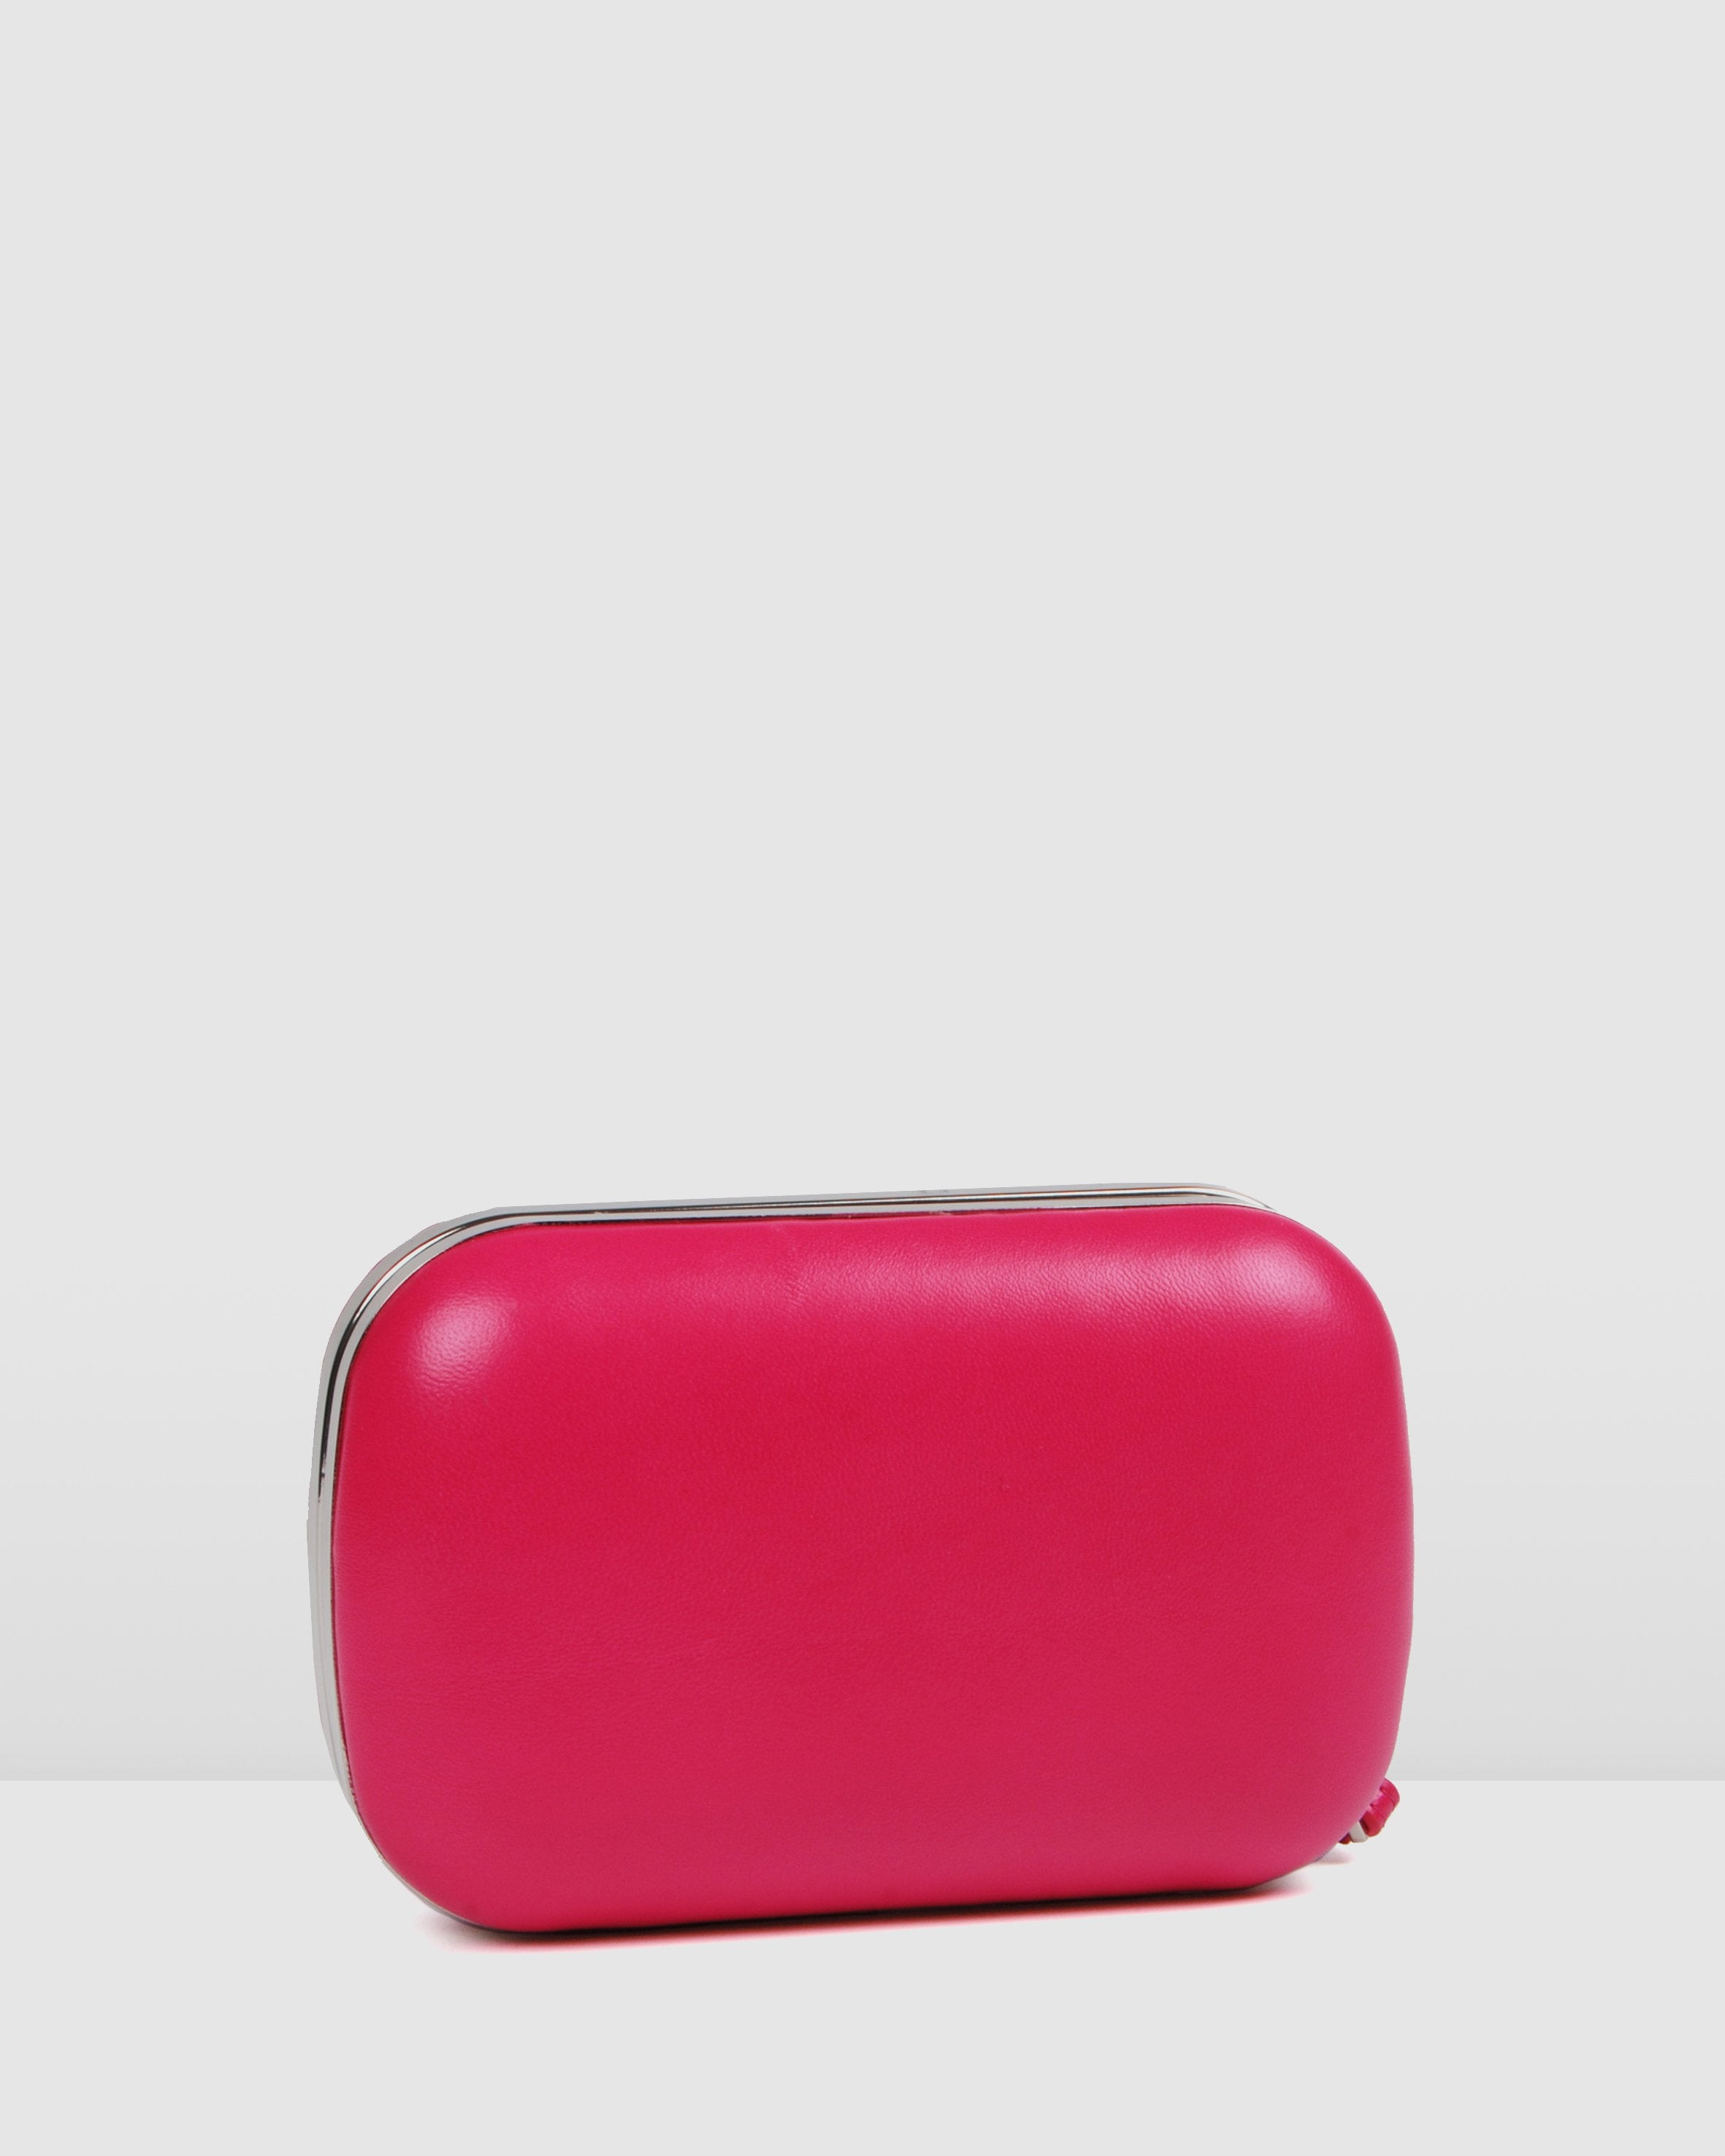 DAZZLE CLUTCH HOT PINK LEATHER